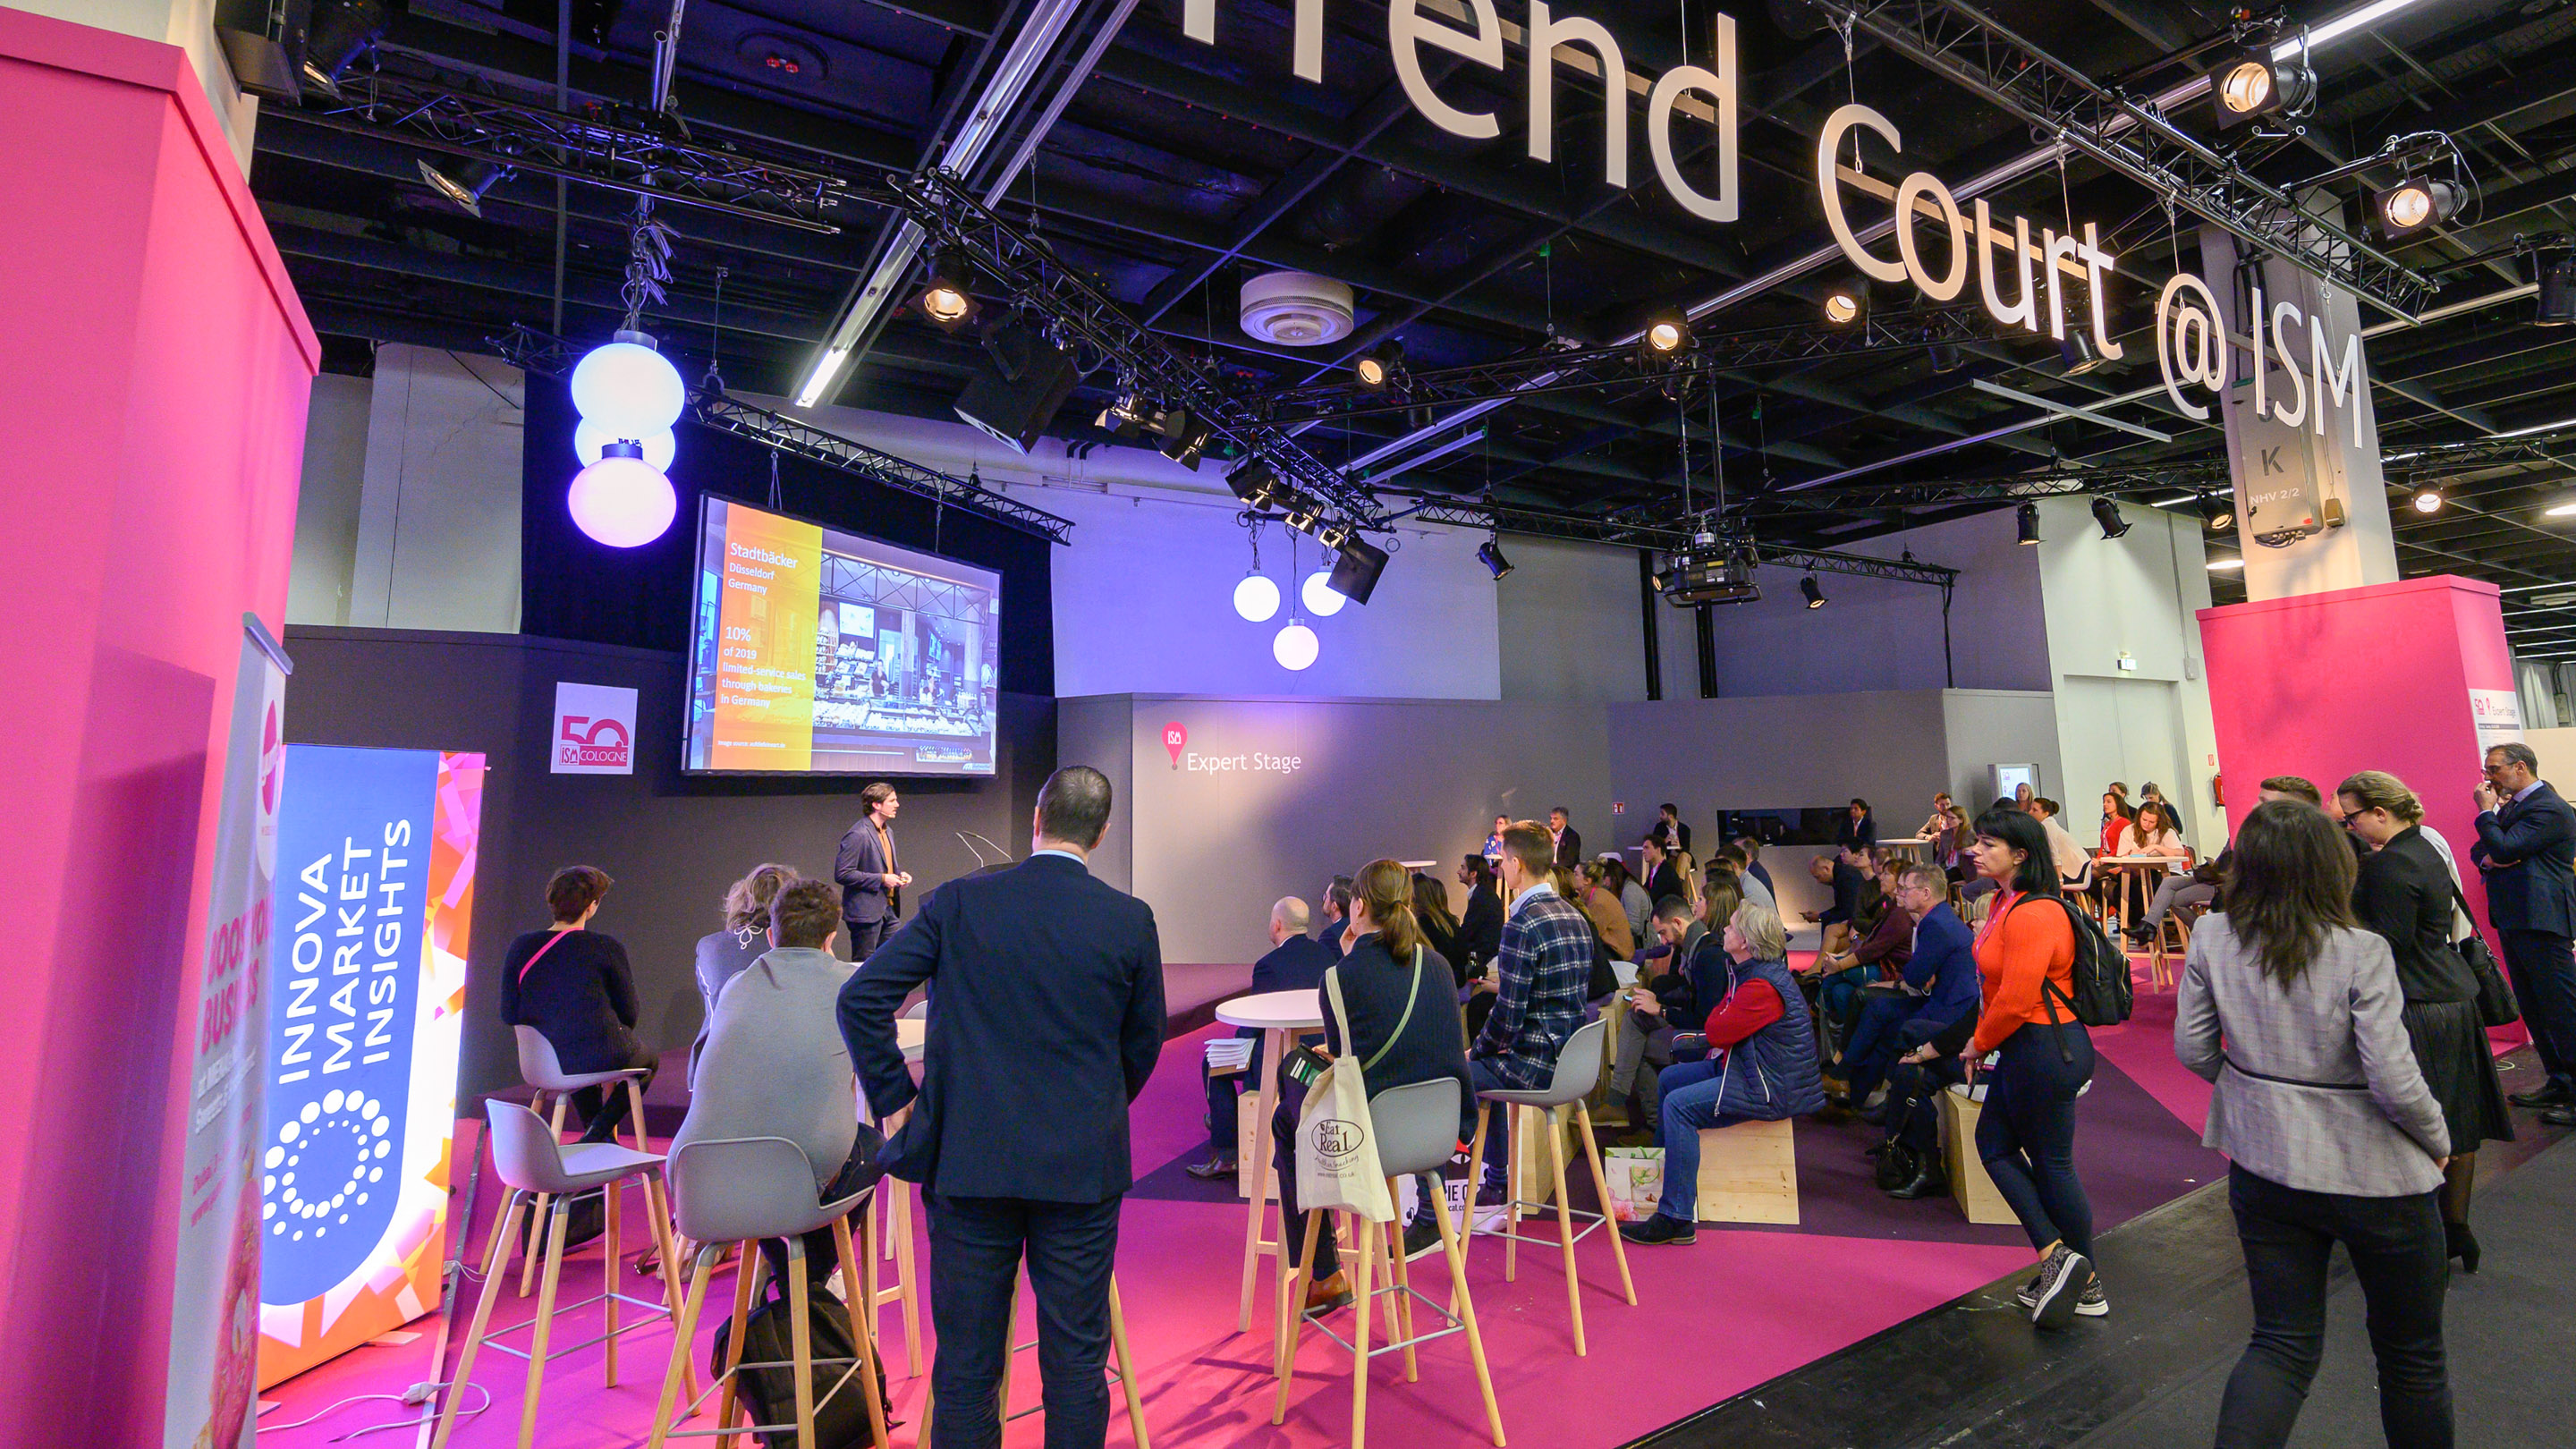 Trend Court@ISM, Snacking and Indulgence: Why Foodservice Matters - Stephen DuttonEuromonitor International, Expert Stage, Halle 5.2, ISM 2020